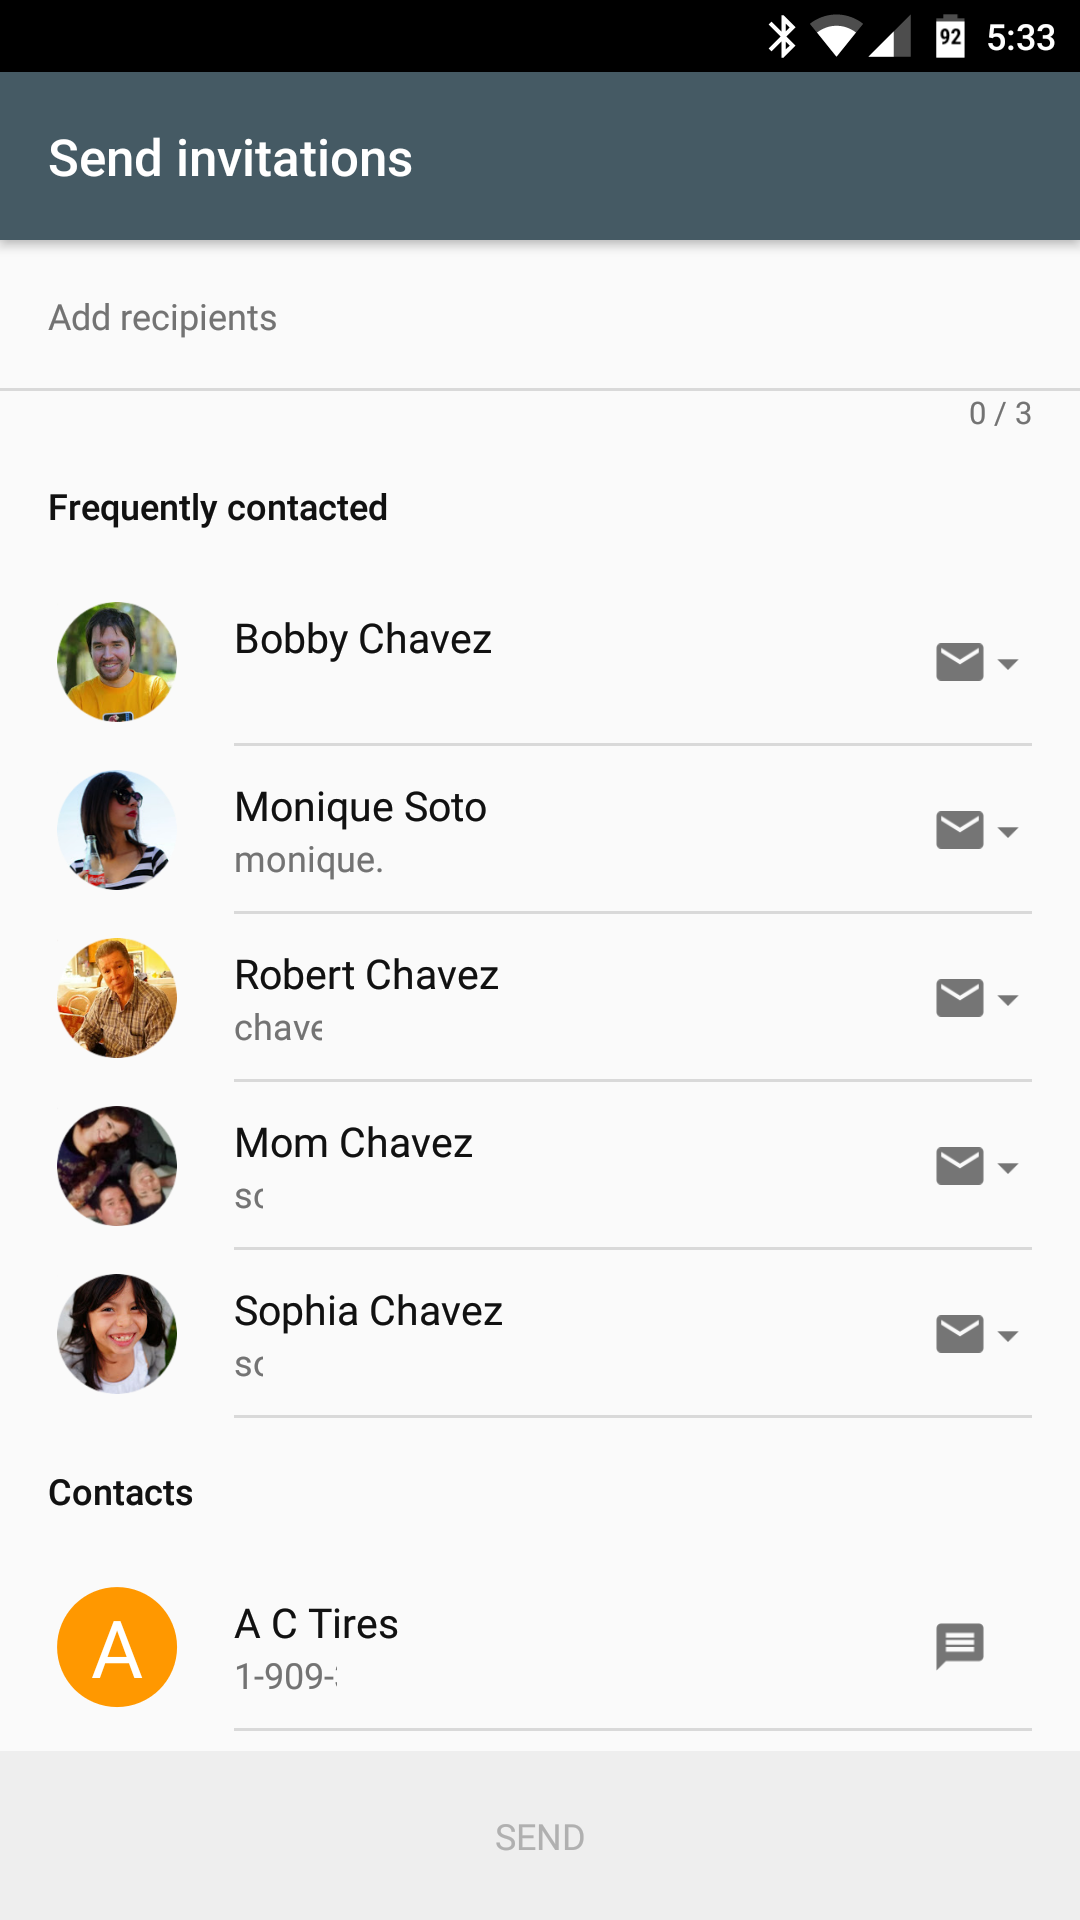 Warning: When joining a new family group, once you're removed or the group  is deleted, you can't join another one for 12 months.